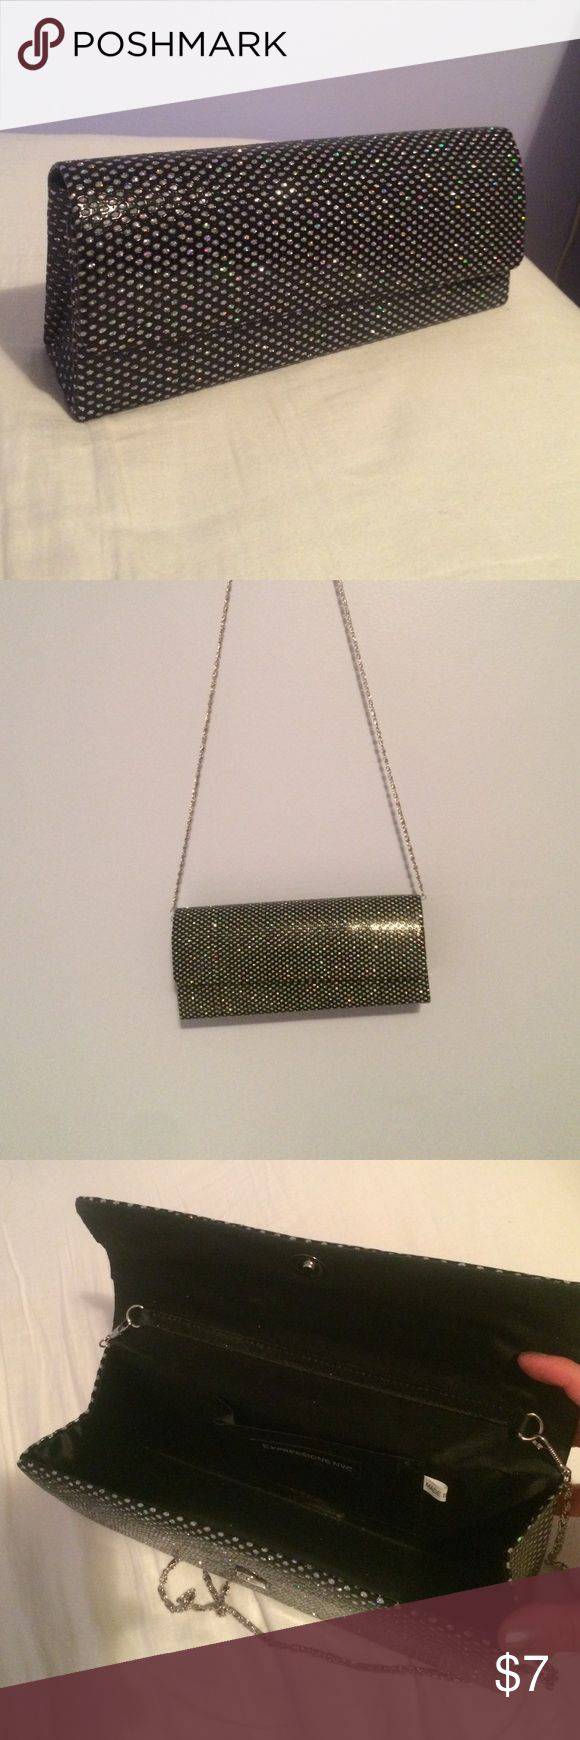 Sparkly black formal clutch Super cute black clutch that is very sparkly and shiny! Has a chain so you can wear on your shoulder instead of carrying it Expressions NYC Bags Clutches & Wristlets